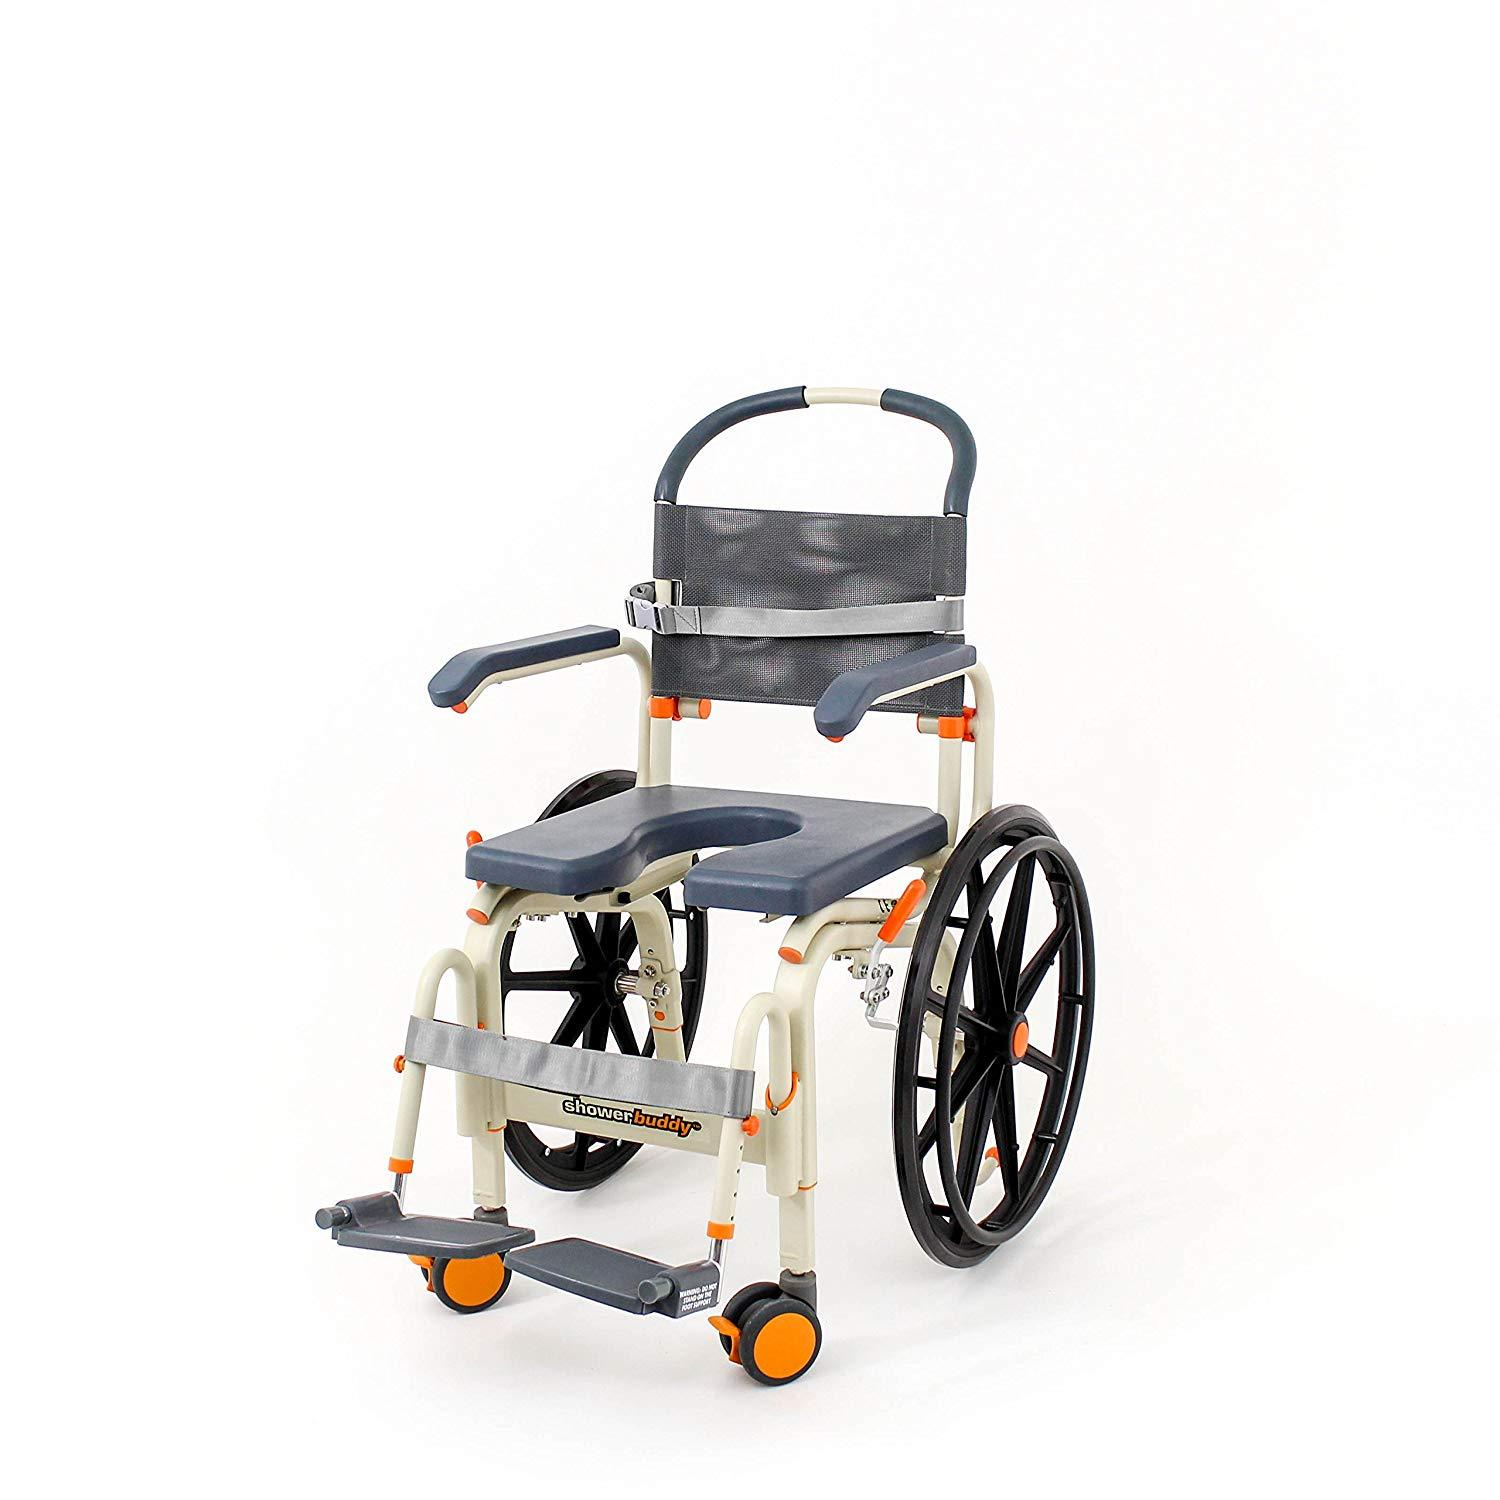 ShowerBuddy Self-propelled Roll-in Shower Chair